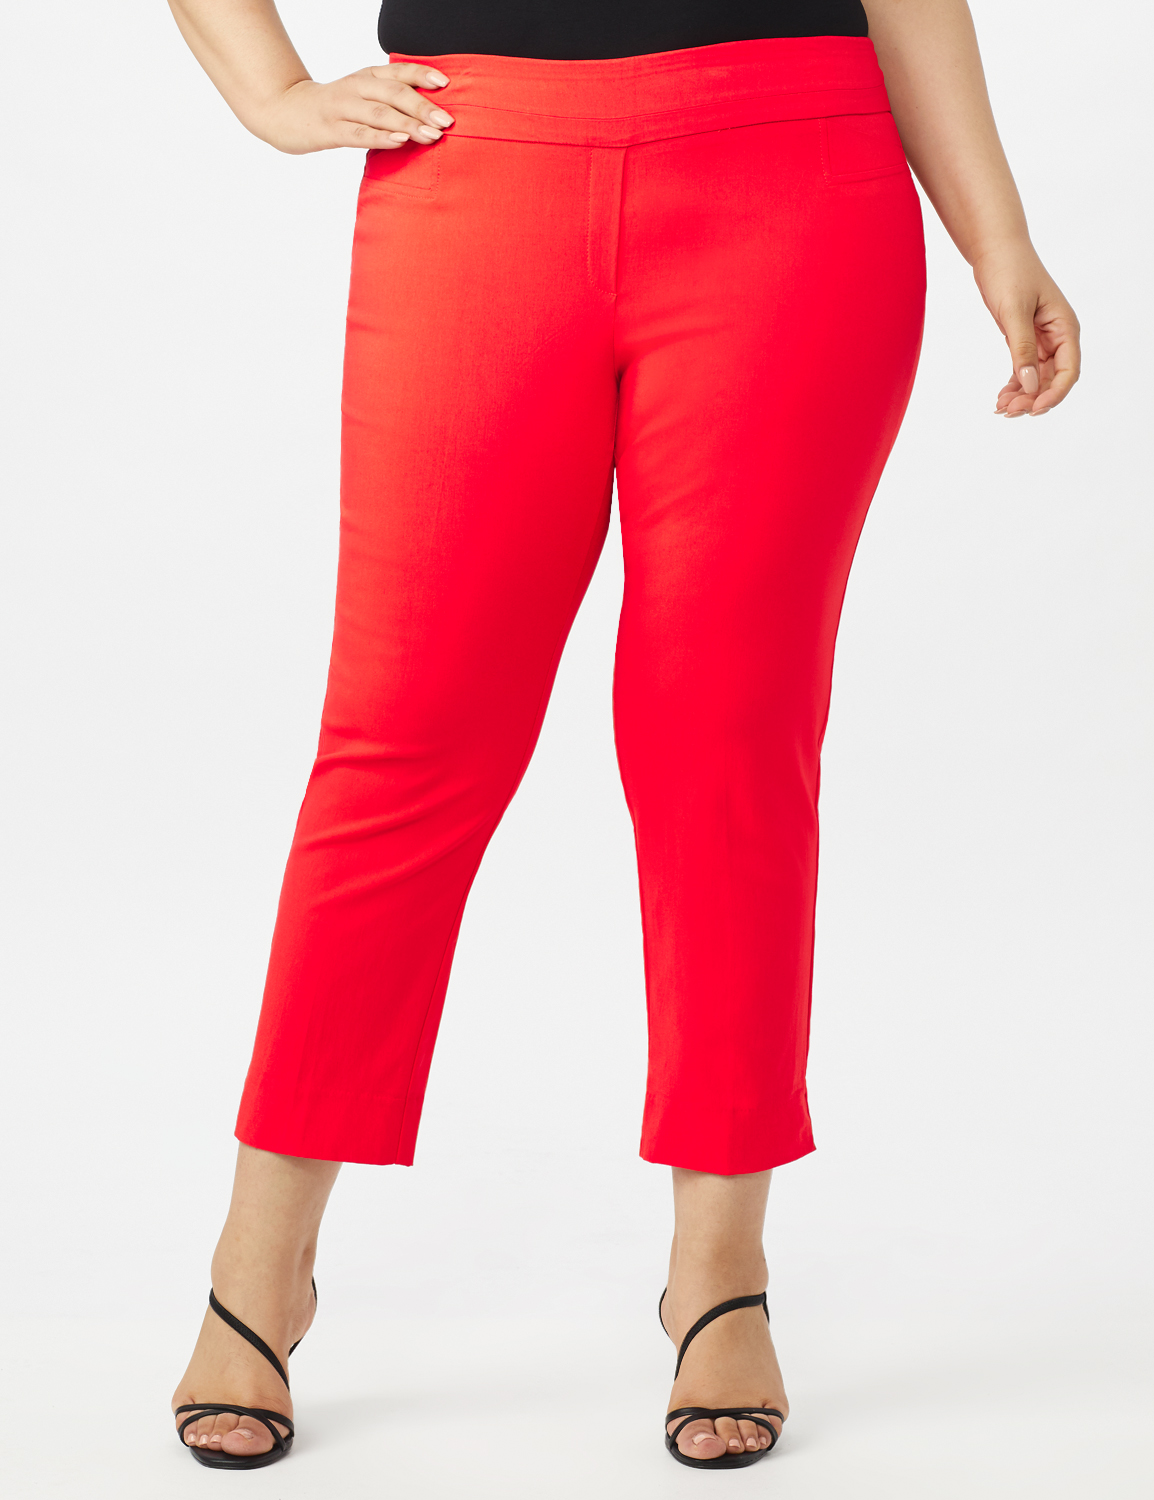 Plus - L-Pocket Pull-On Crop Pants -Coralicious - Front